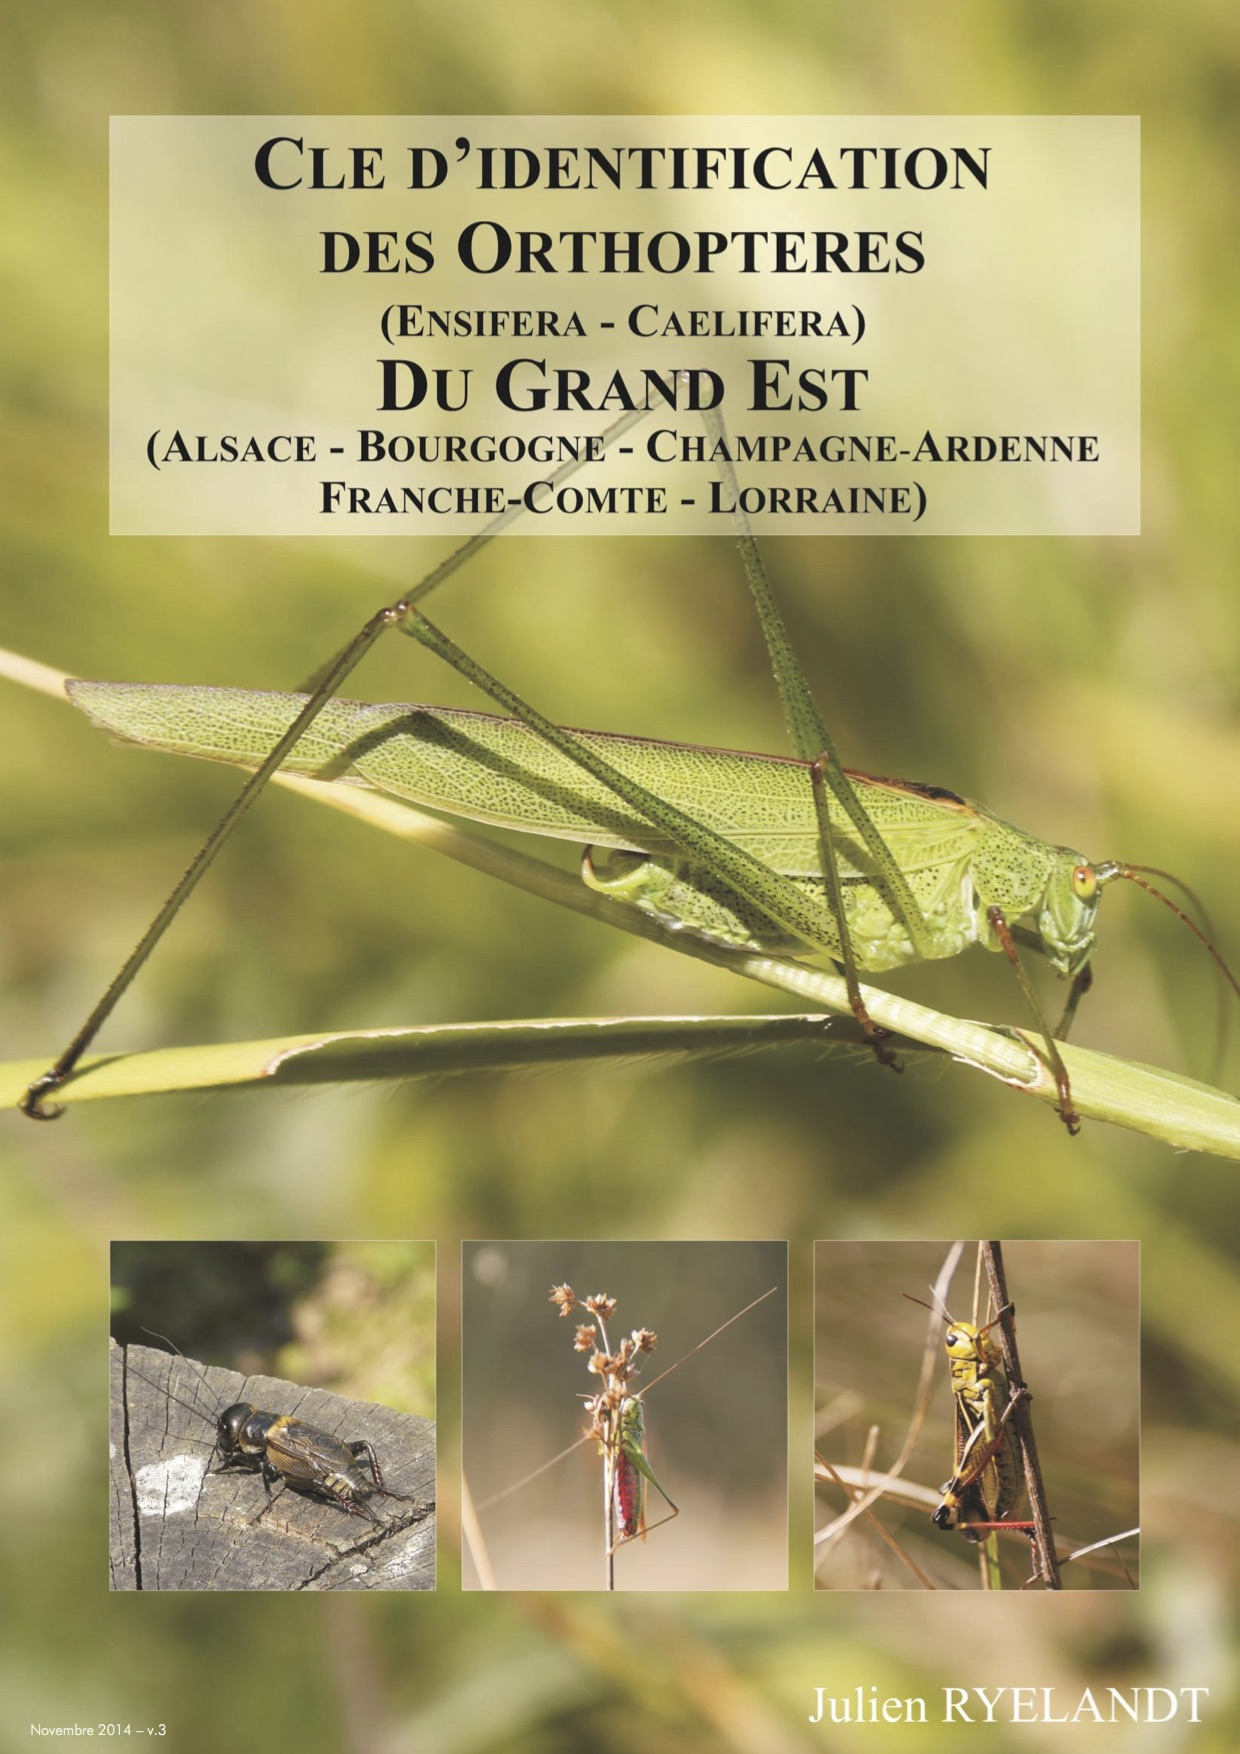 https://cdnfiles2.biolovision.net/www.faune-alsace.org/userfiles/Insectes/ORTHOPTERA/J-RYELANDT2014cleorthopteres-gd-estv3.jpg